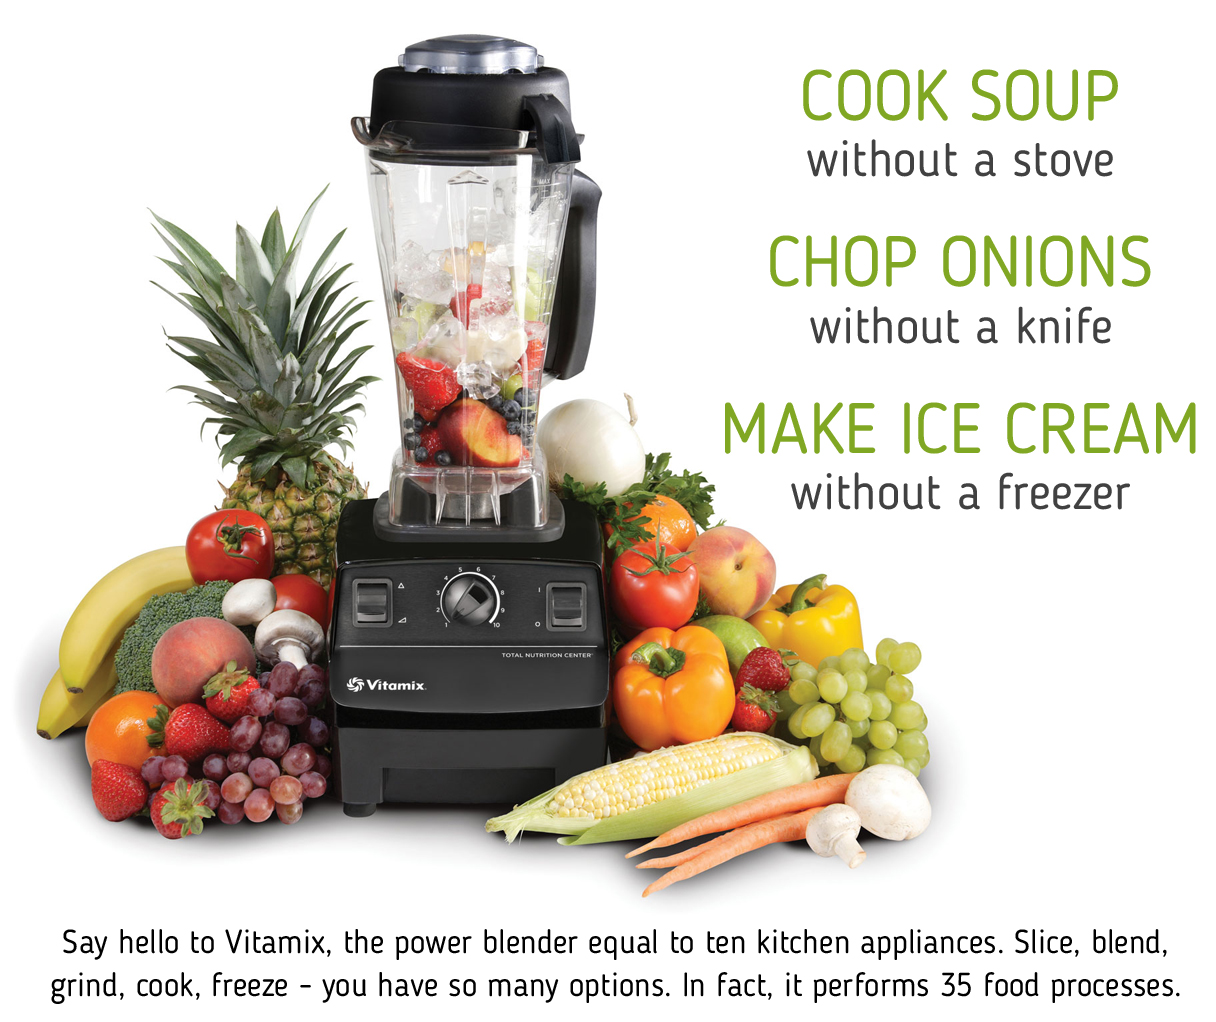 Vitamix Blender!